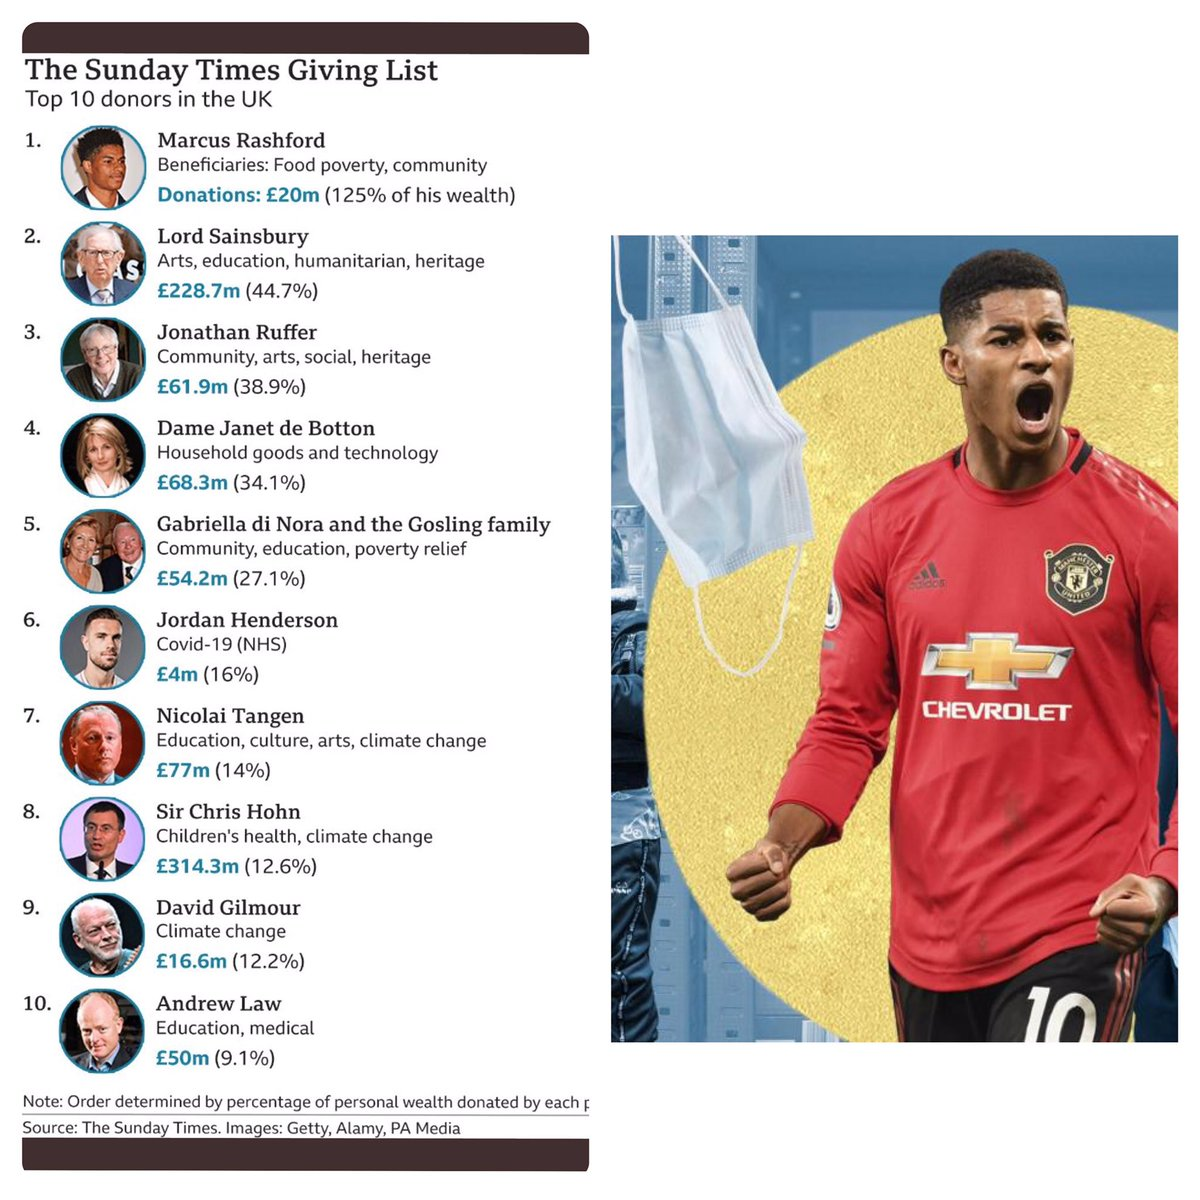 """GoldMyne's tweet - """"#TheGivingList : Manchester United Marcus Rashford tops  The Sunday Times Giving List 2021. The footballer's food poverty campaign  puts him at the top of their annual list of philanthropists. #"""